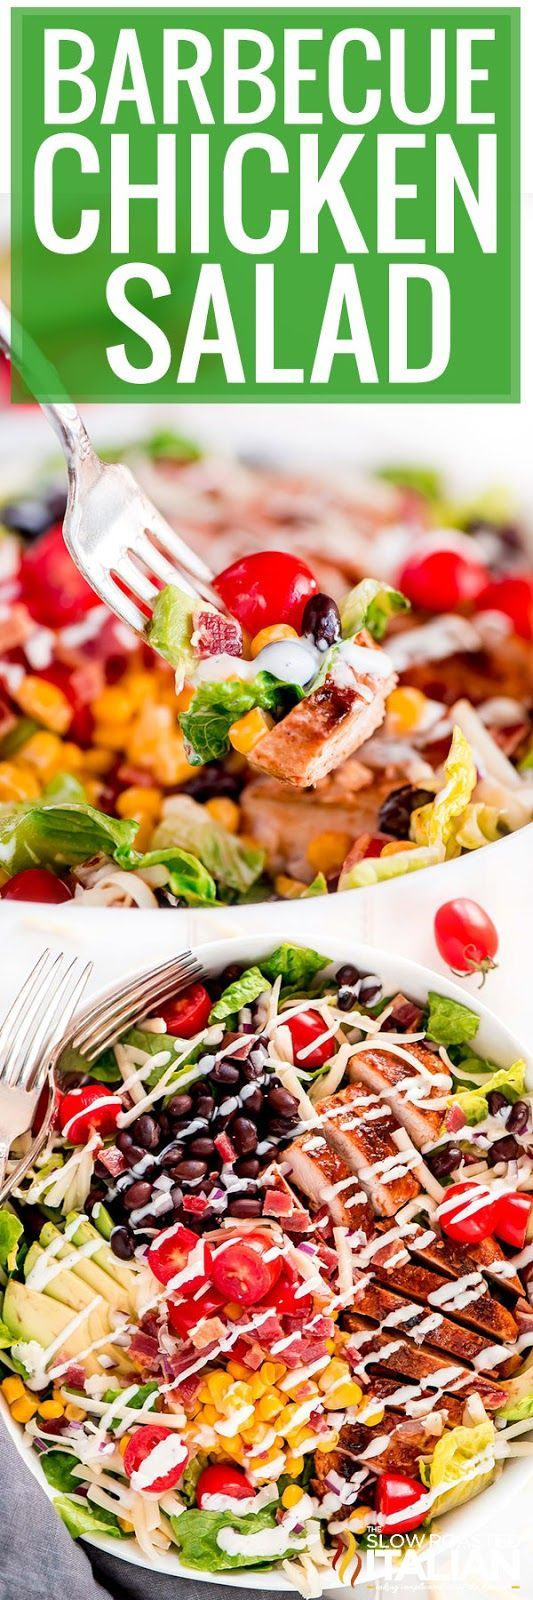 Our Barbecue Chicken Salad recipe is crisp and refreshing and loaded with all your favorite barbecue fixin's. It takes just 25 minutes to throw together! #theslowroasteditalian #tsri #chickensalad #potluckrecipe #chickenrecipe